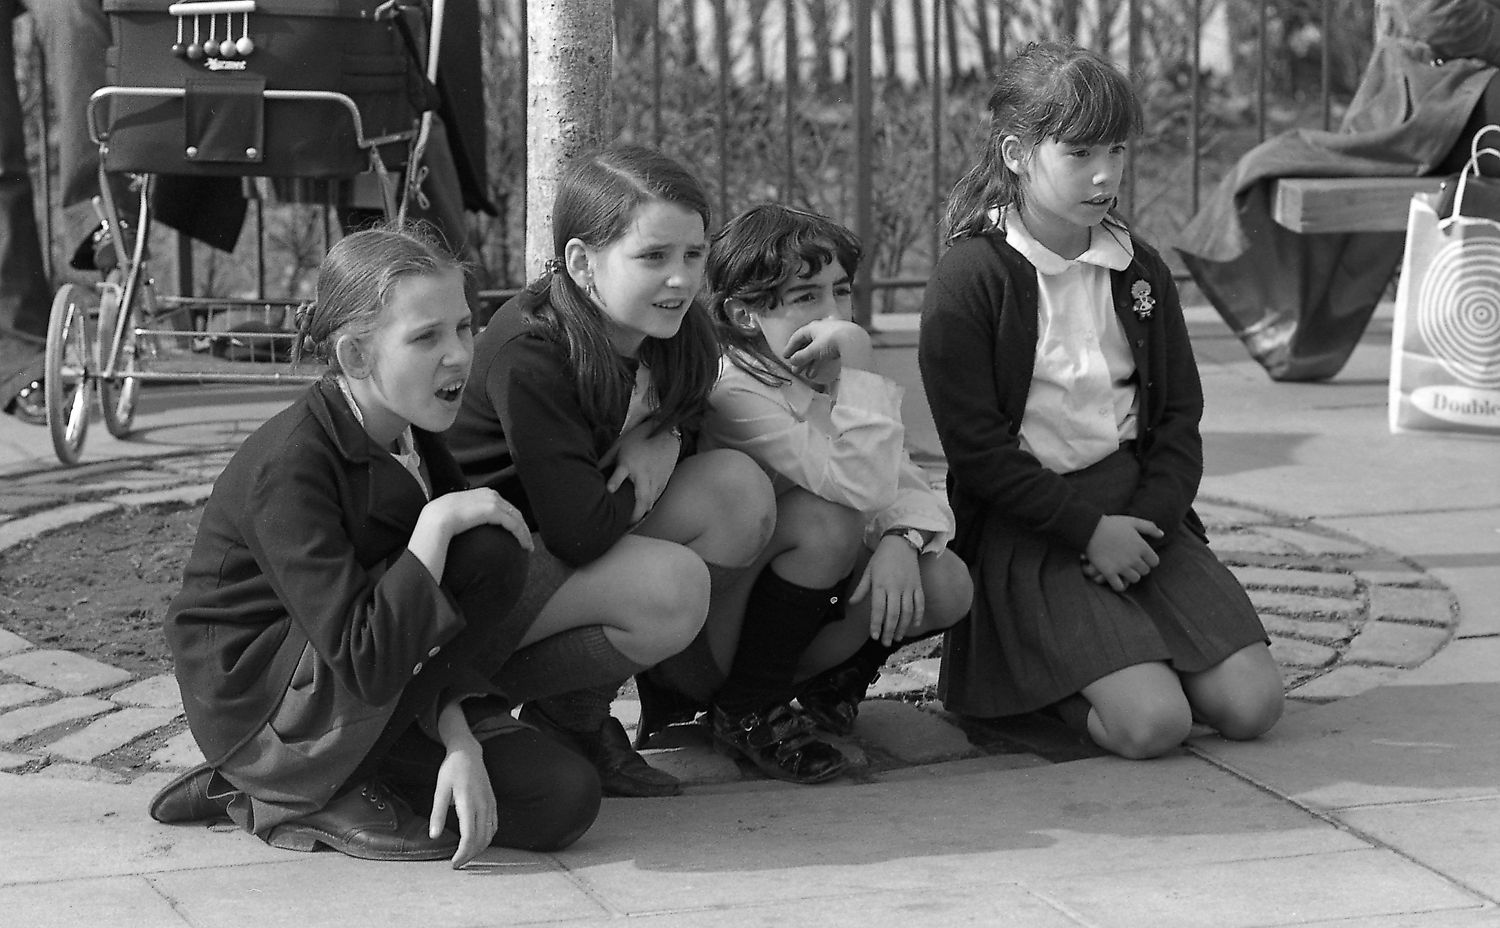 Girls Watching Street Performer